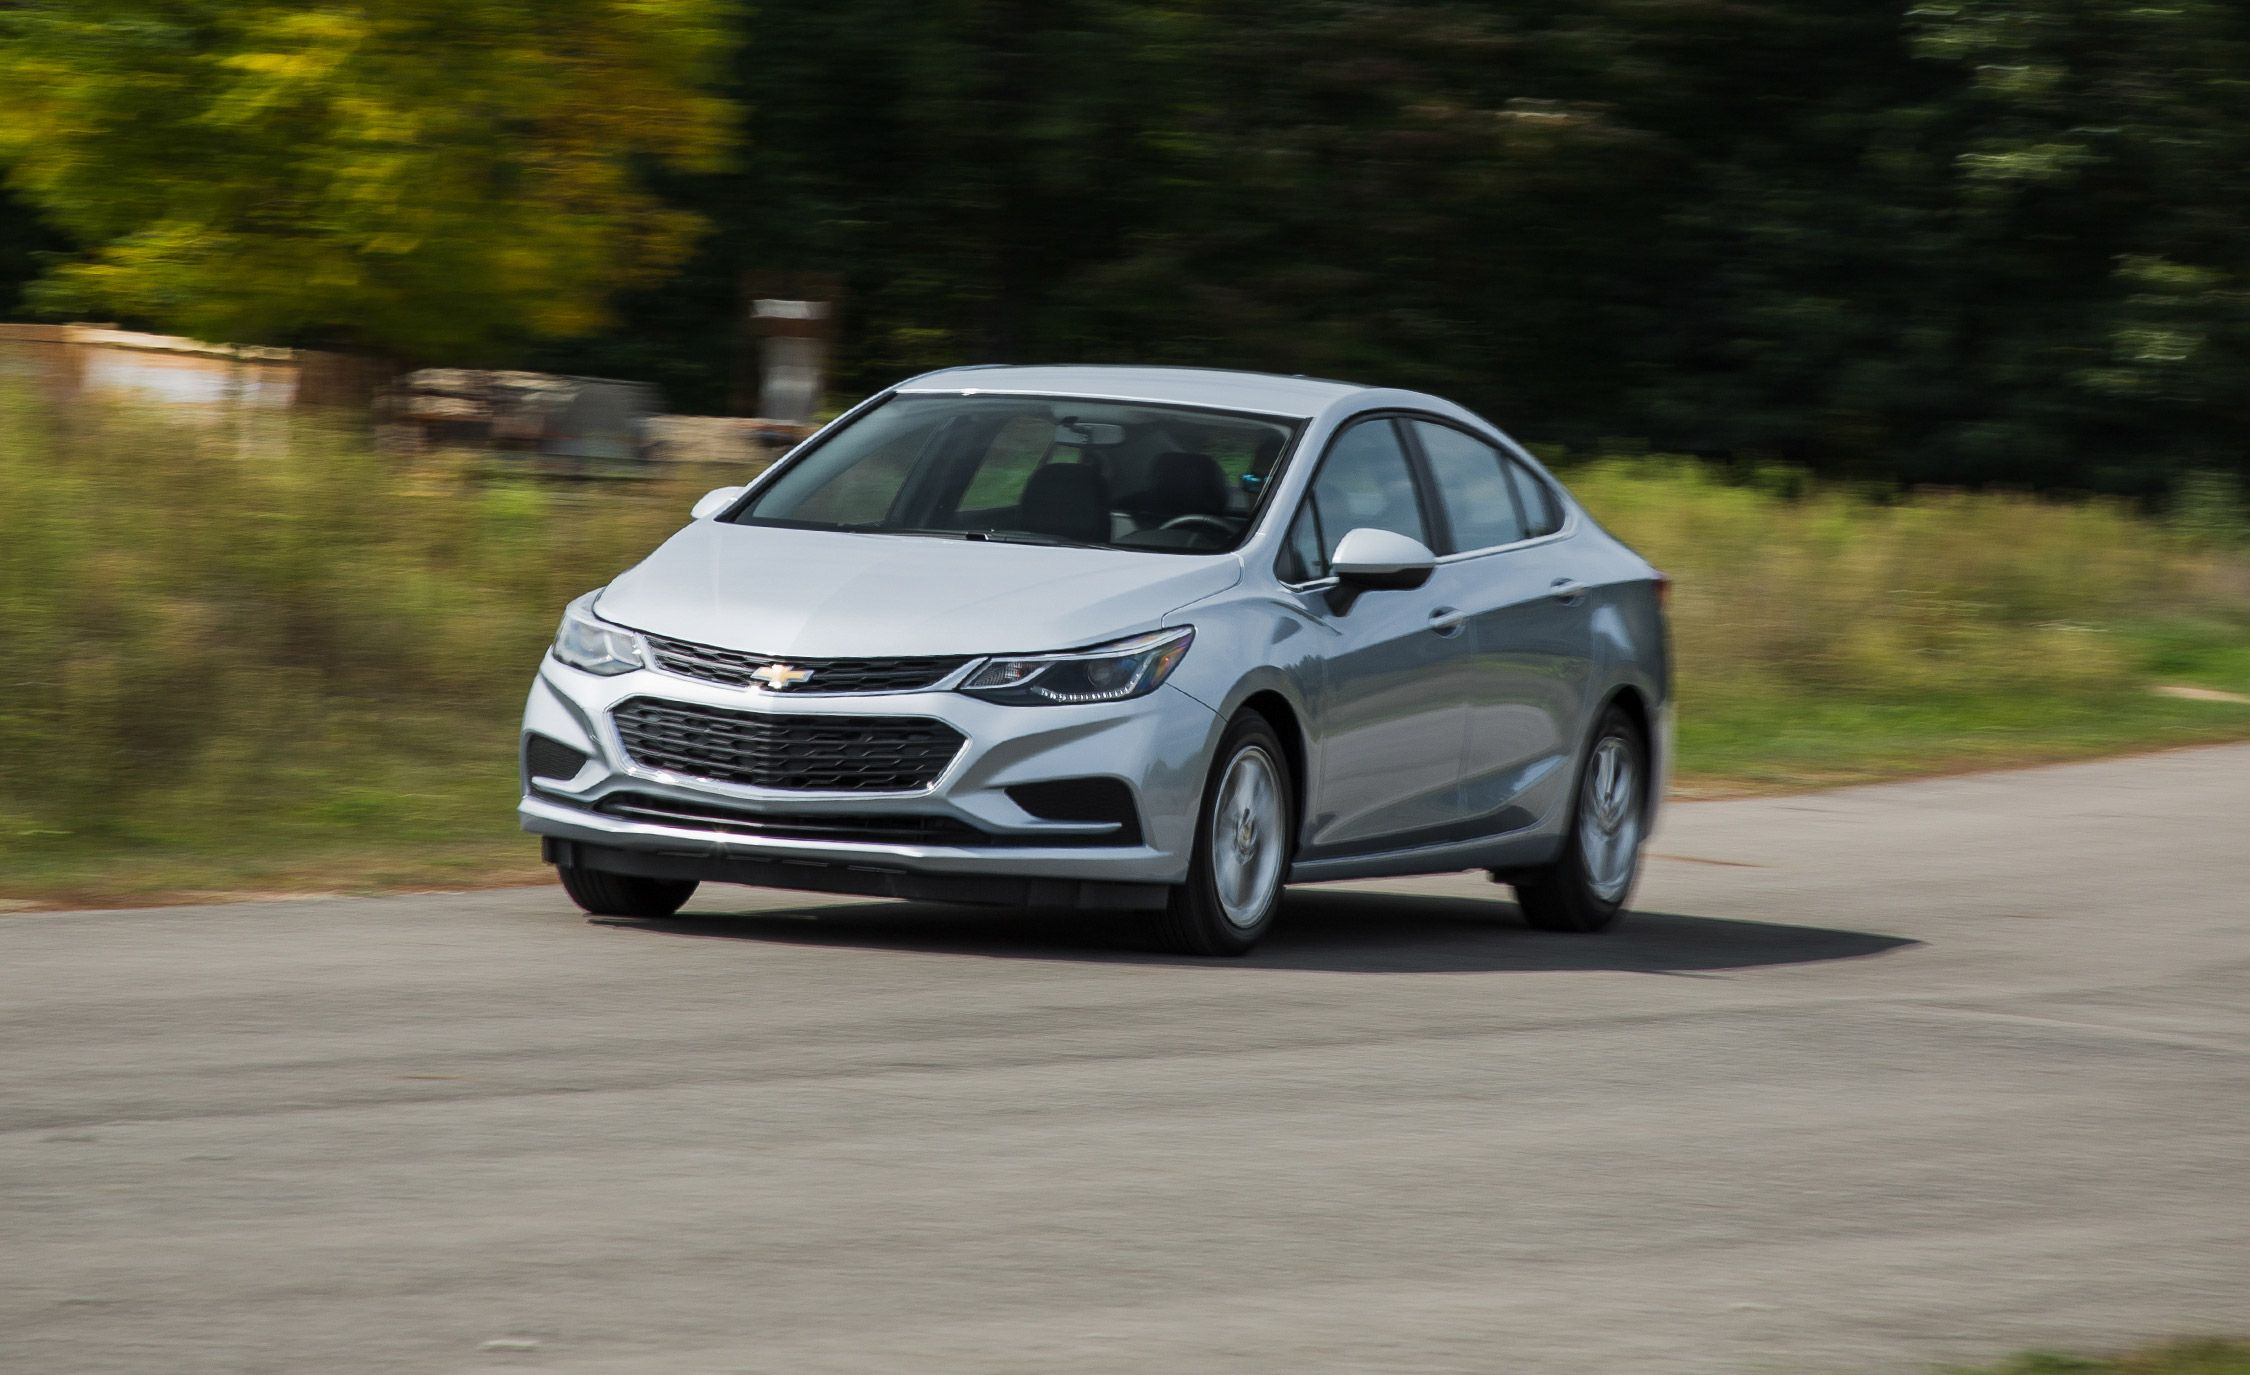 Chevrolet Cruze Reviews Price Photos And Specs 2015 Chevy Station Wagon Car Driver